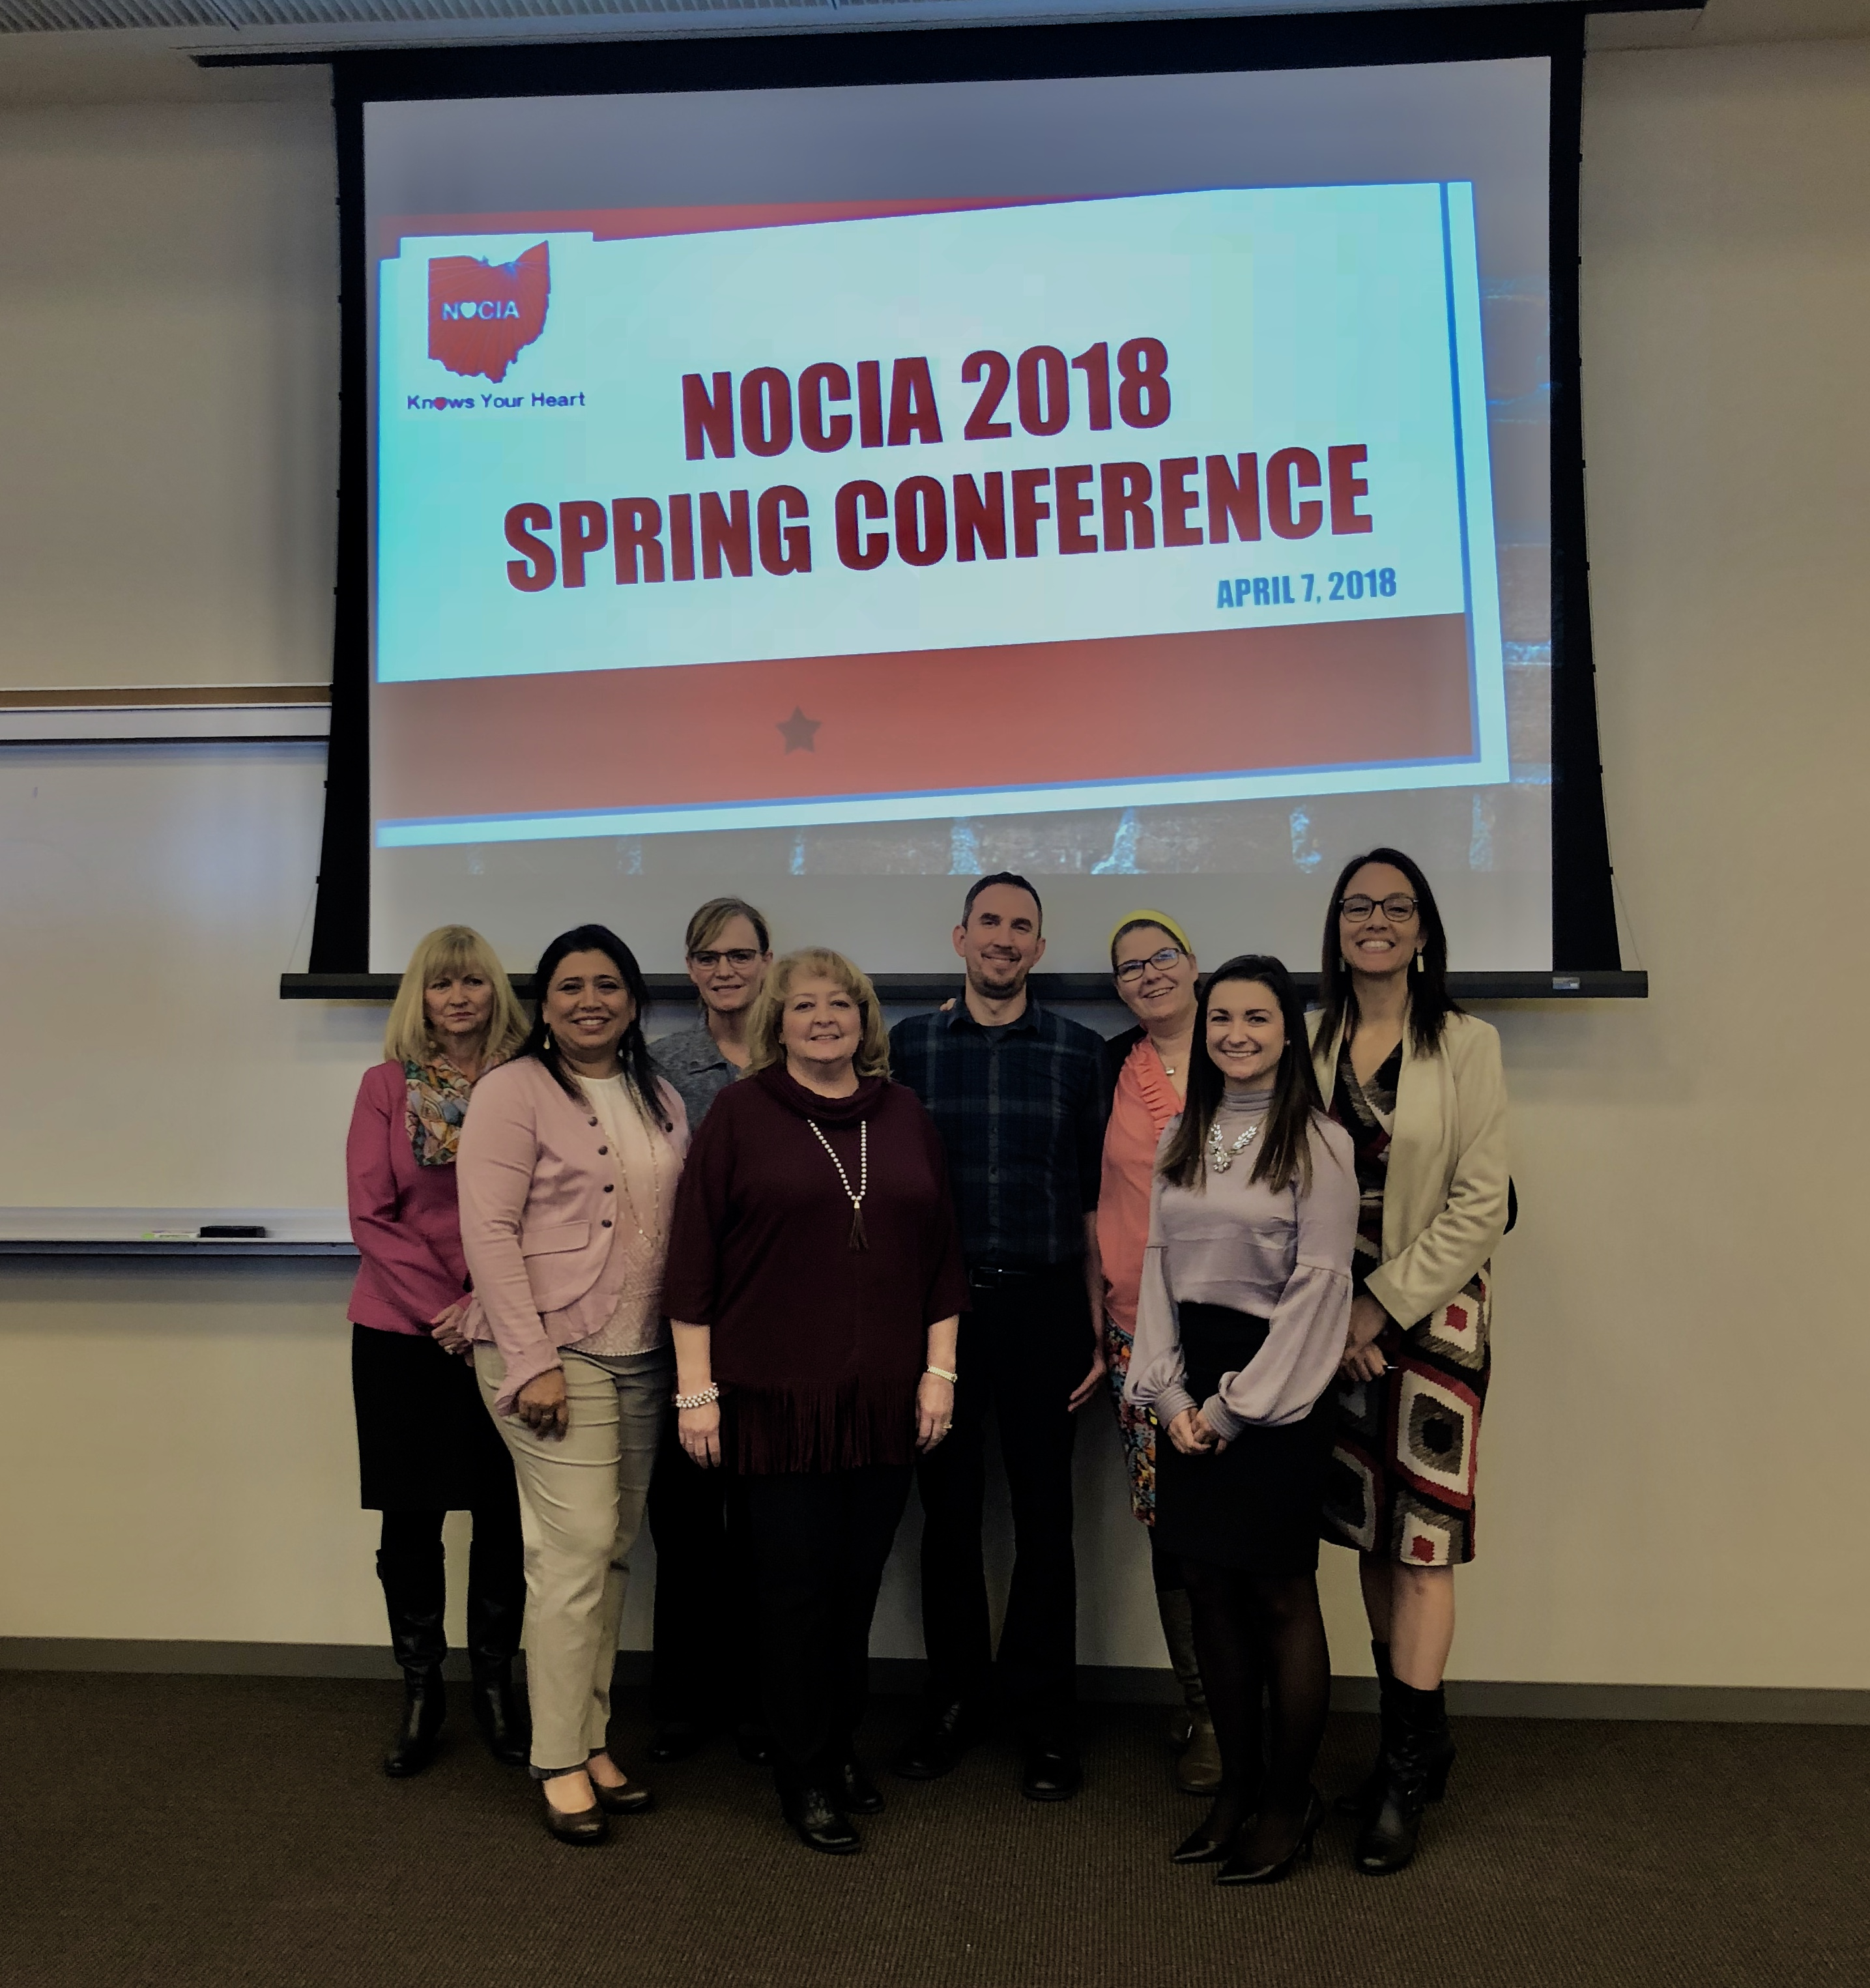 Speakers at the Spring NOCIA conference 2018